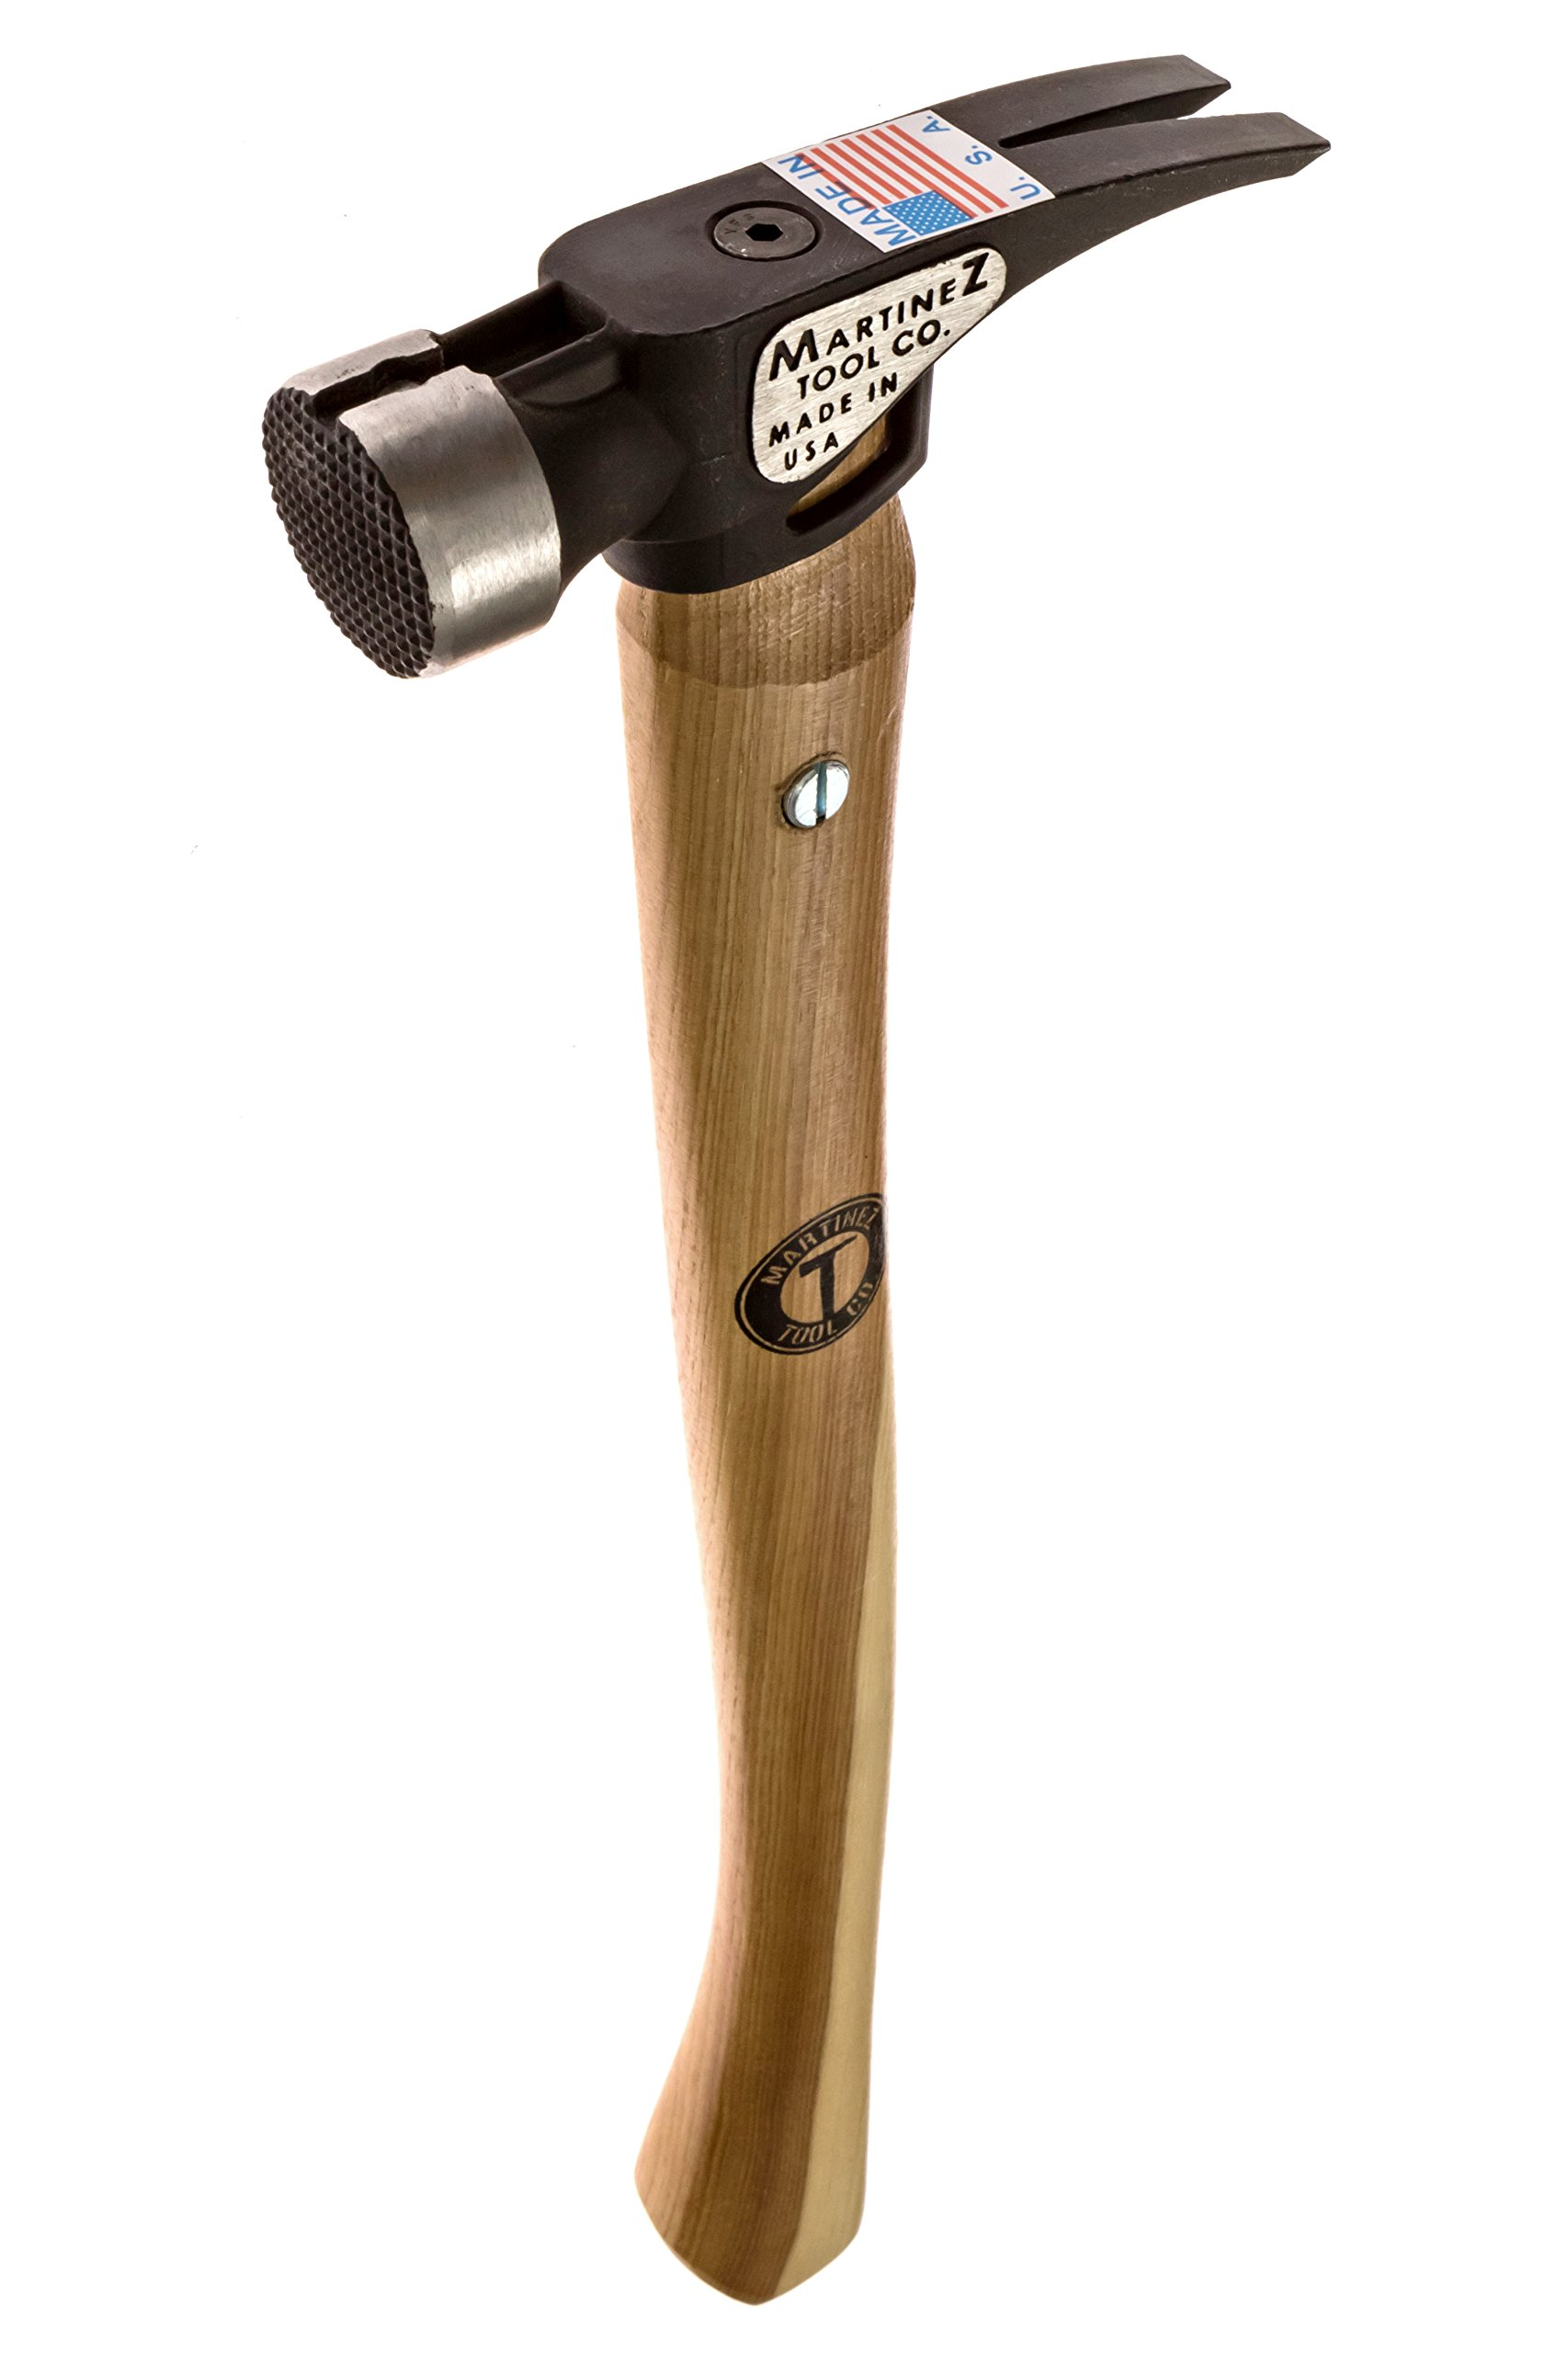 Martinez Tools 19oz Milled Face Steel Head Hammer with Curved Wood Handle